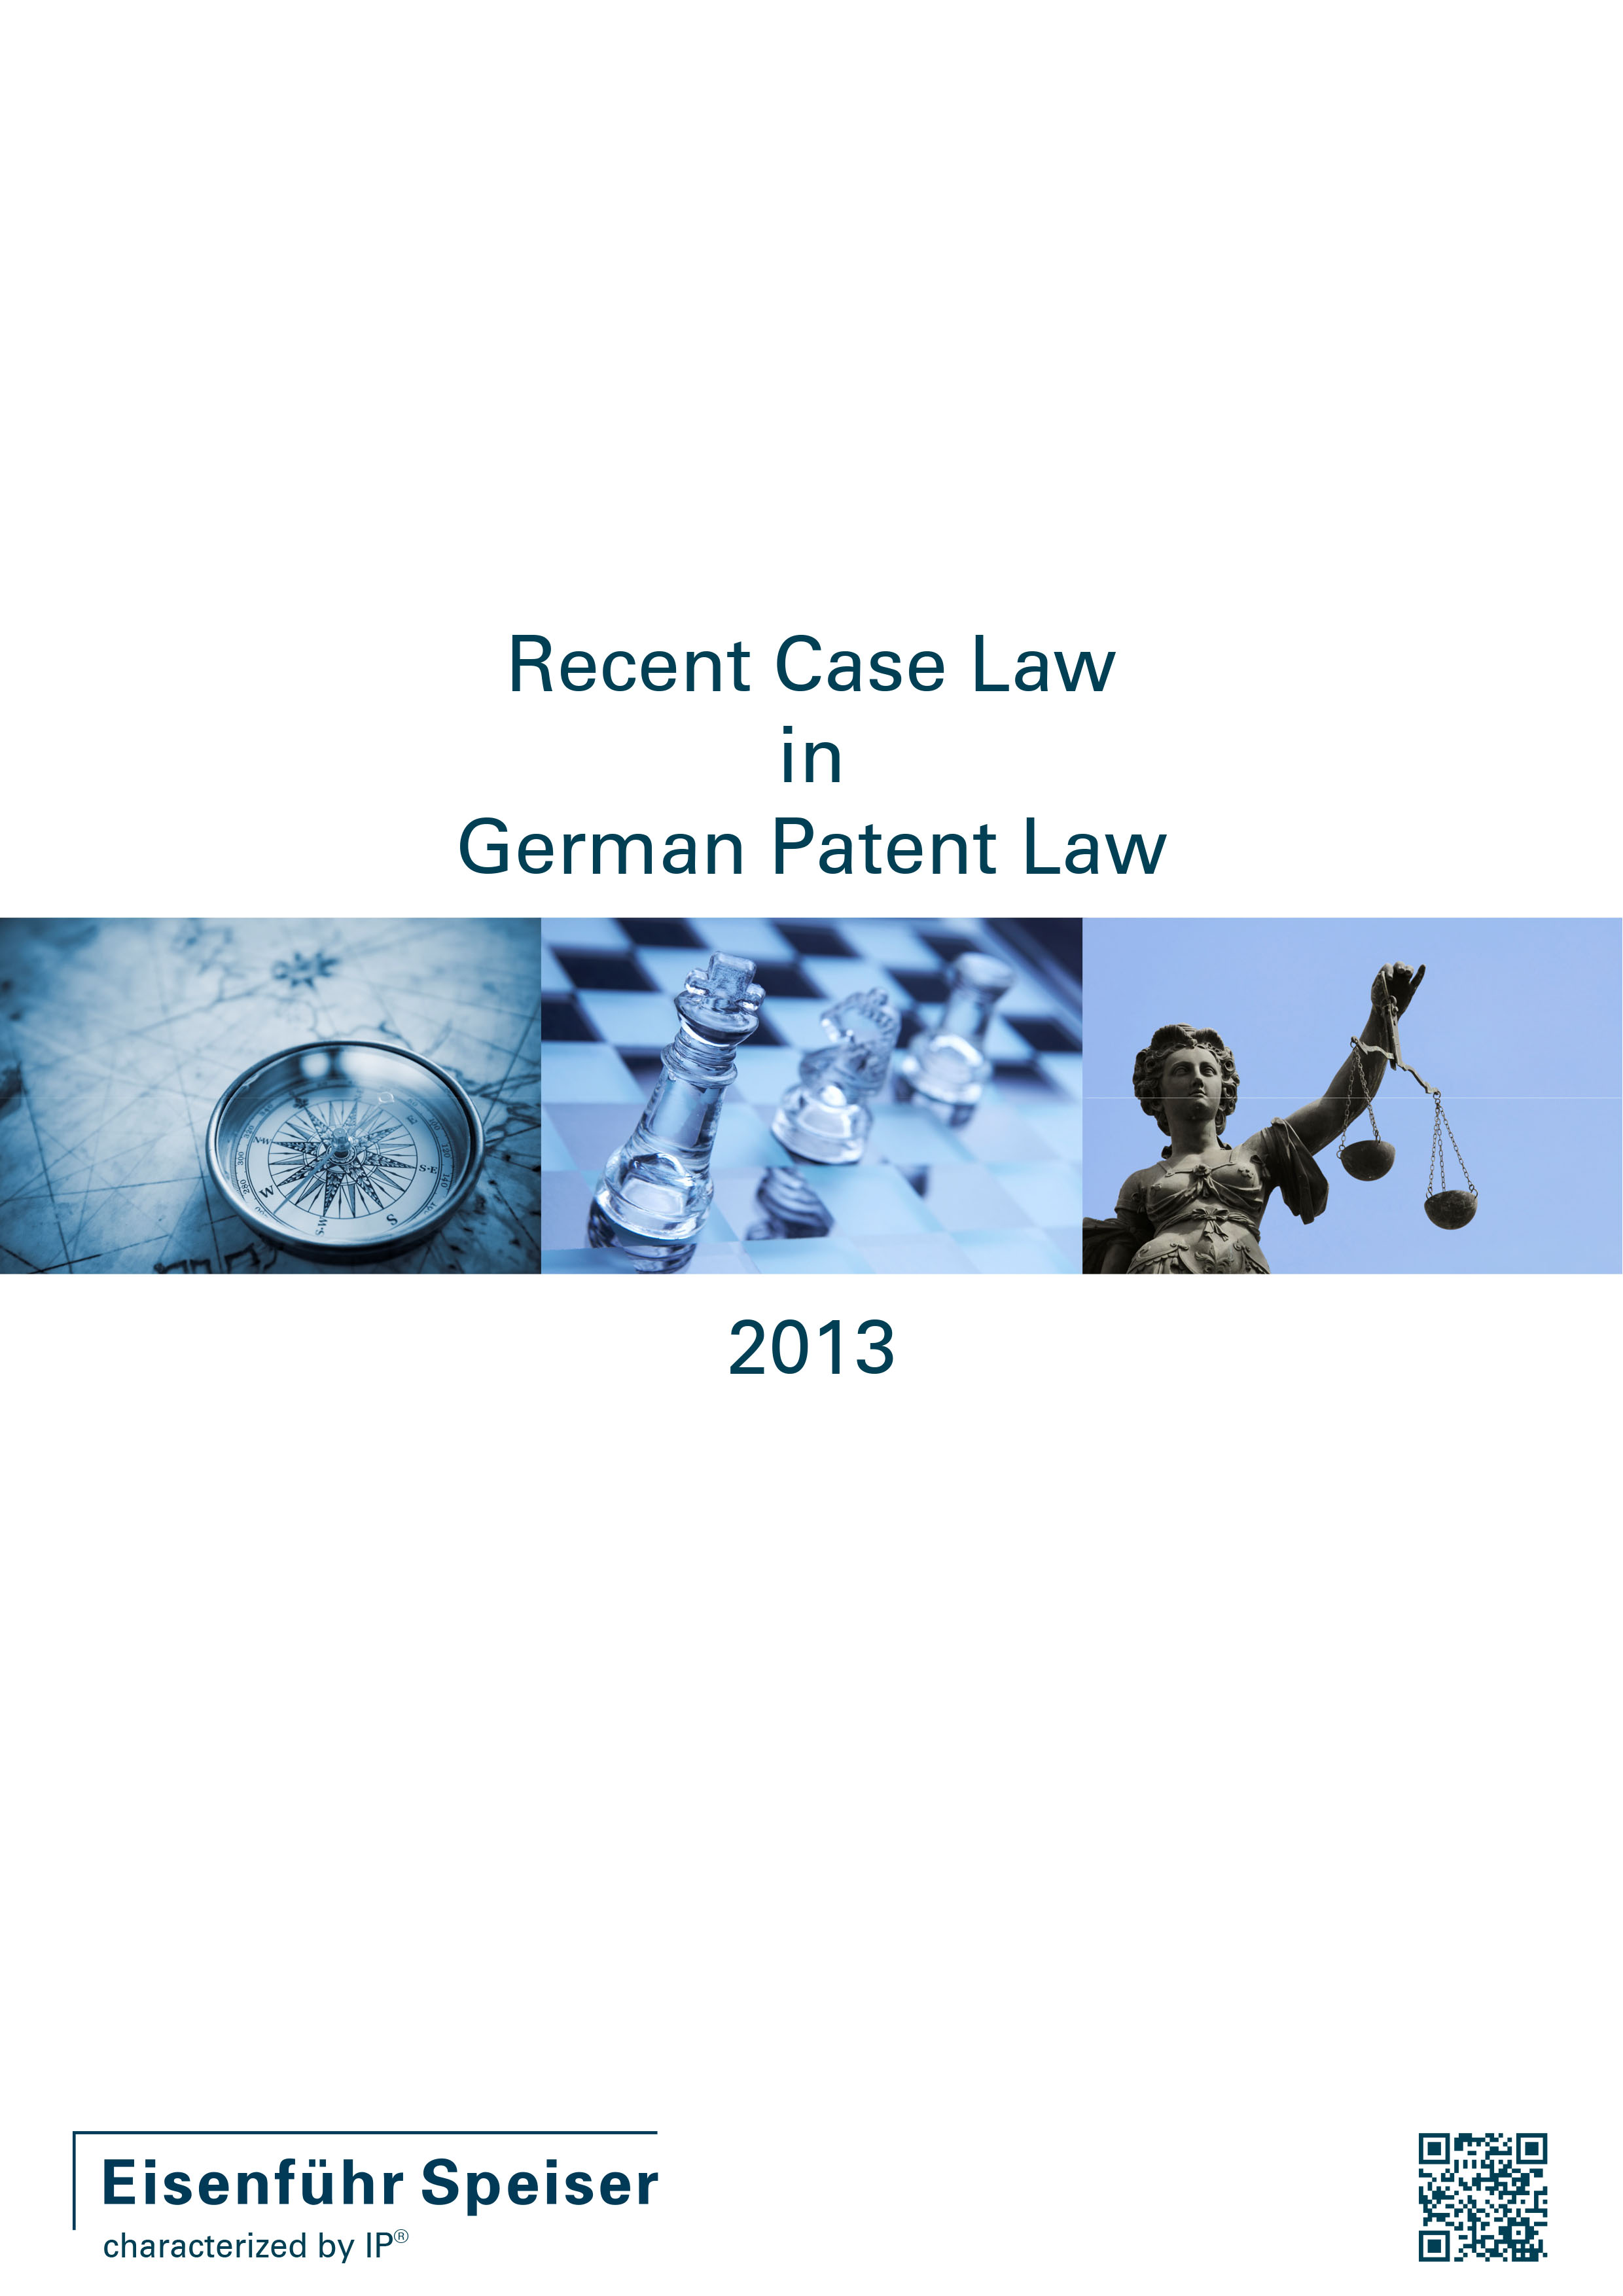 Recent Case Law in German Patent Law 2013